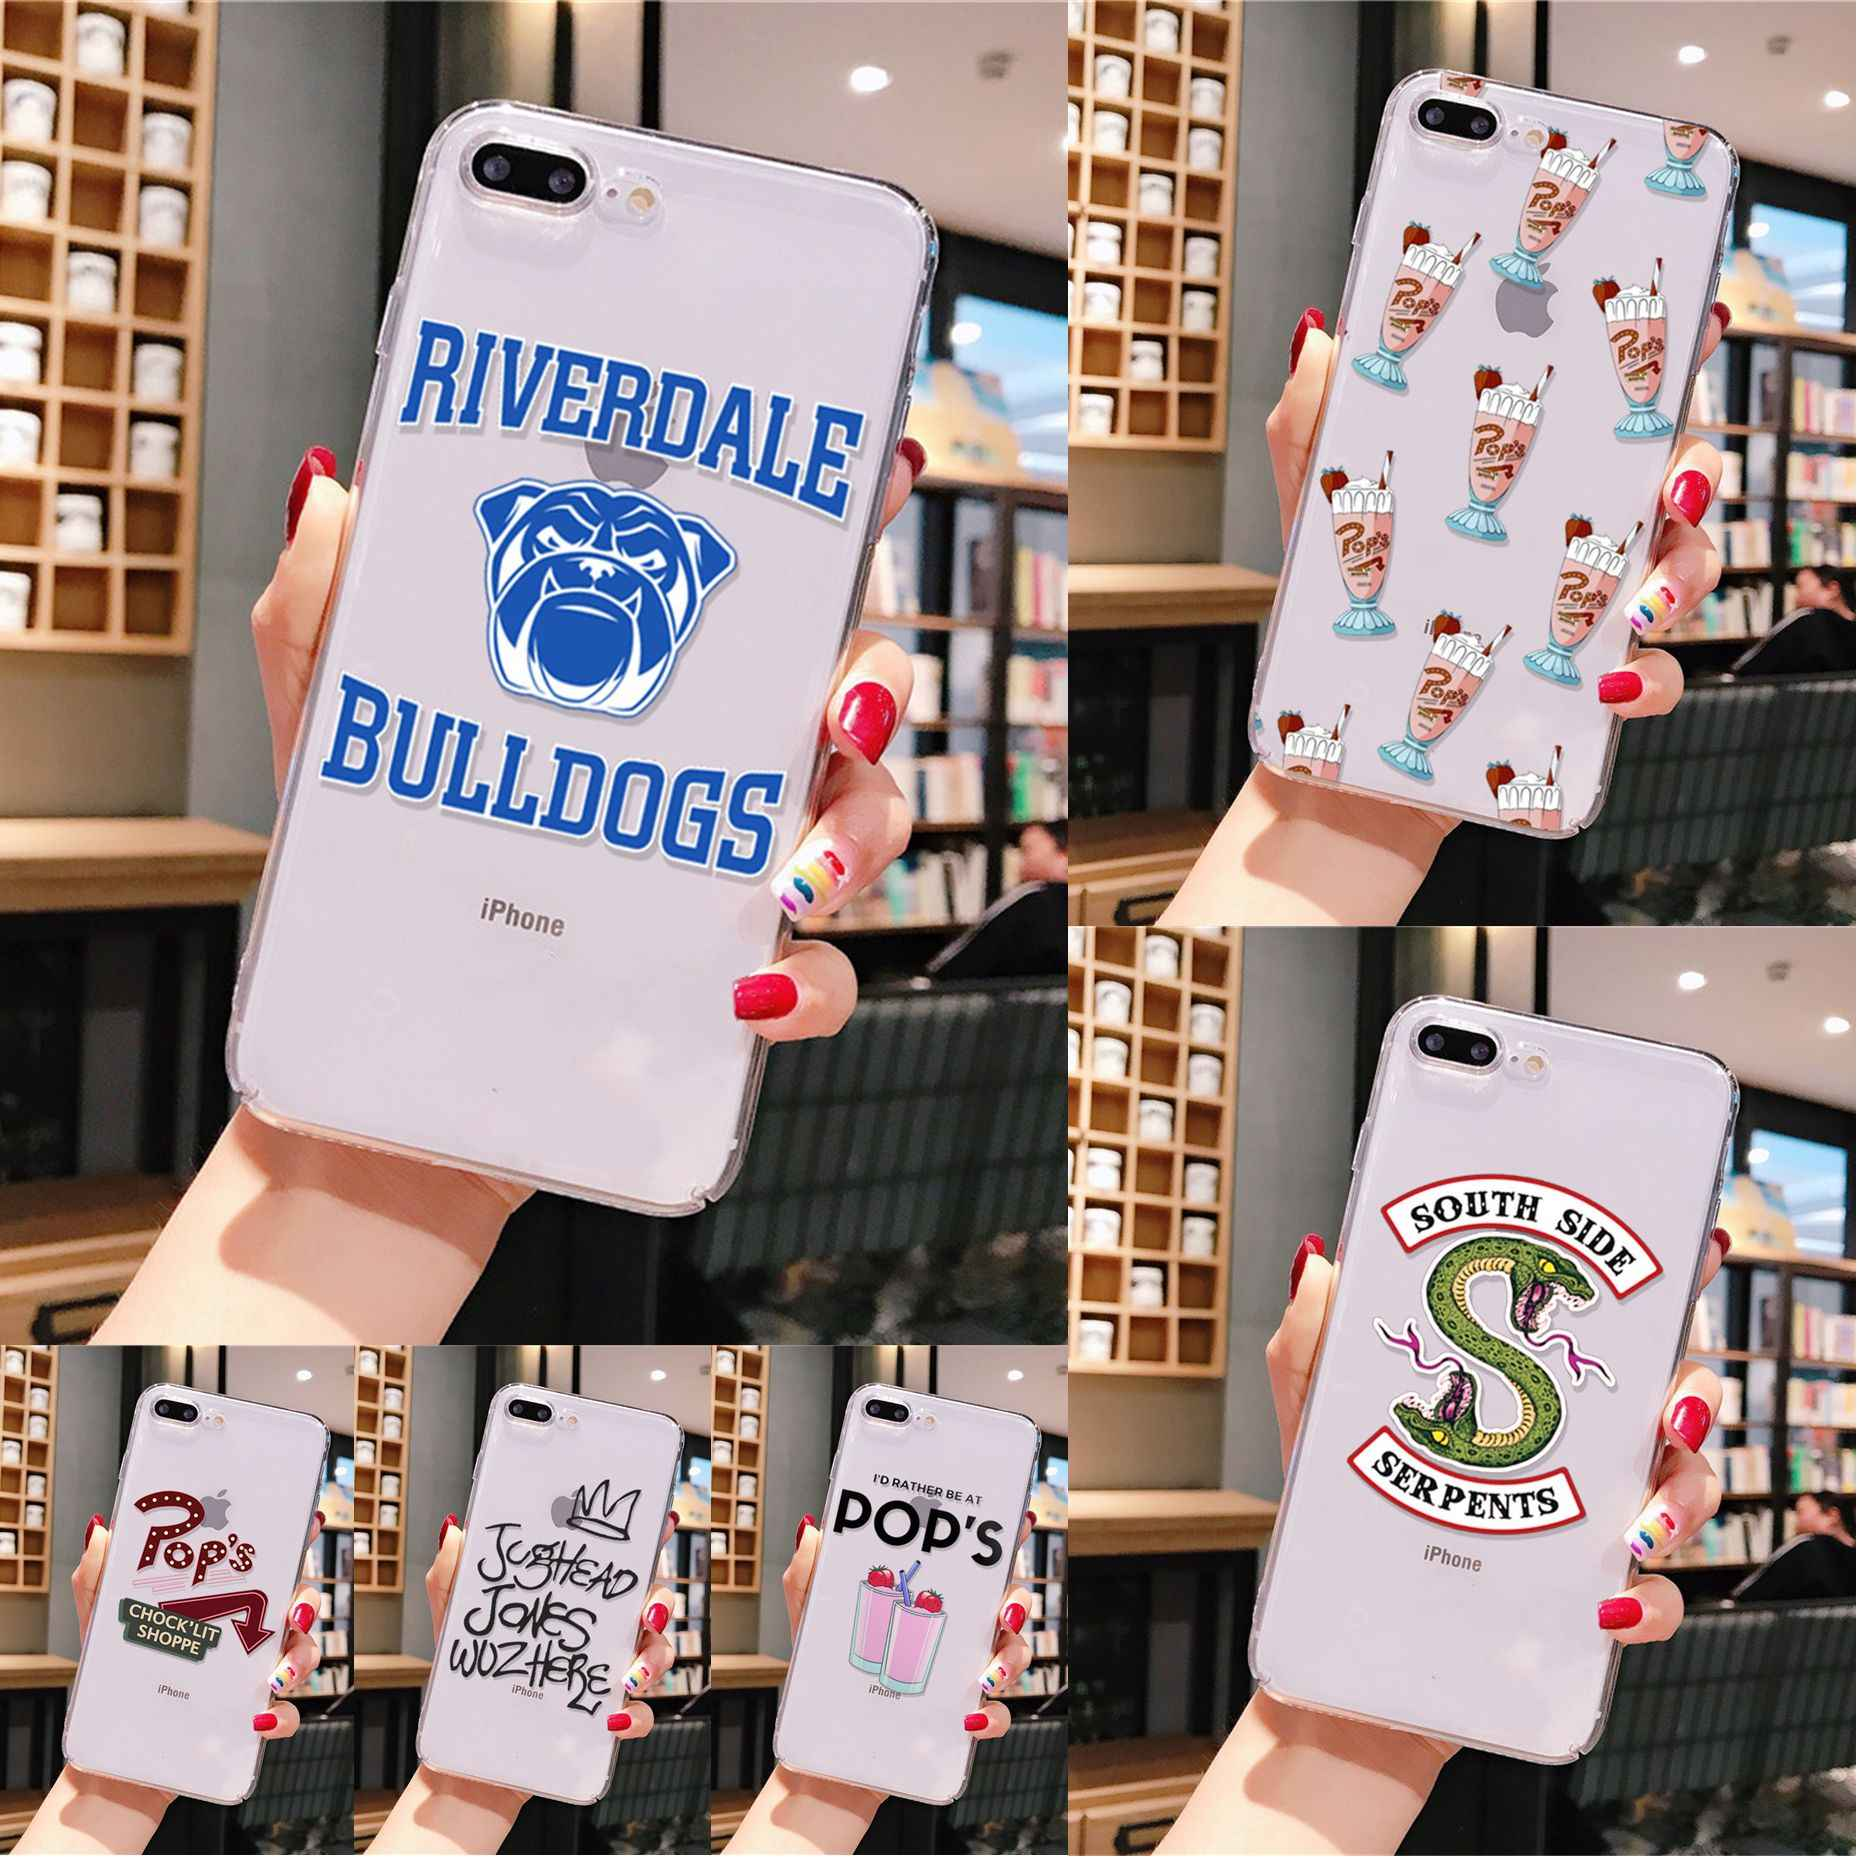 Yinuoda Hot TV Riverdale Pola TPU Soft Phone Cell Phone Case untuk iPhone 8 7 6 6S Plus X XS Max 5 5S SE XR 11 Pro Max